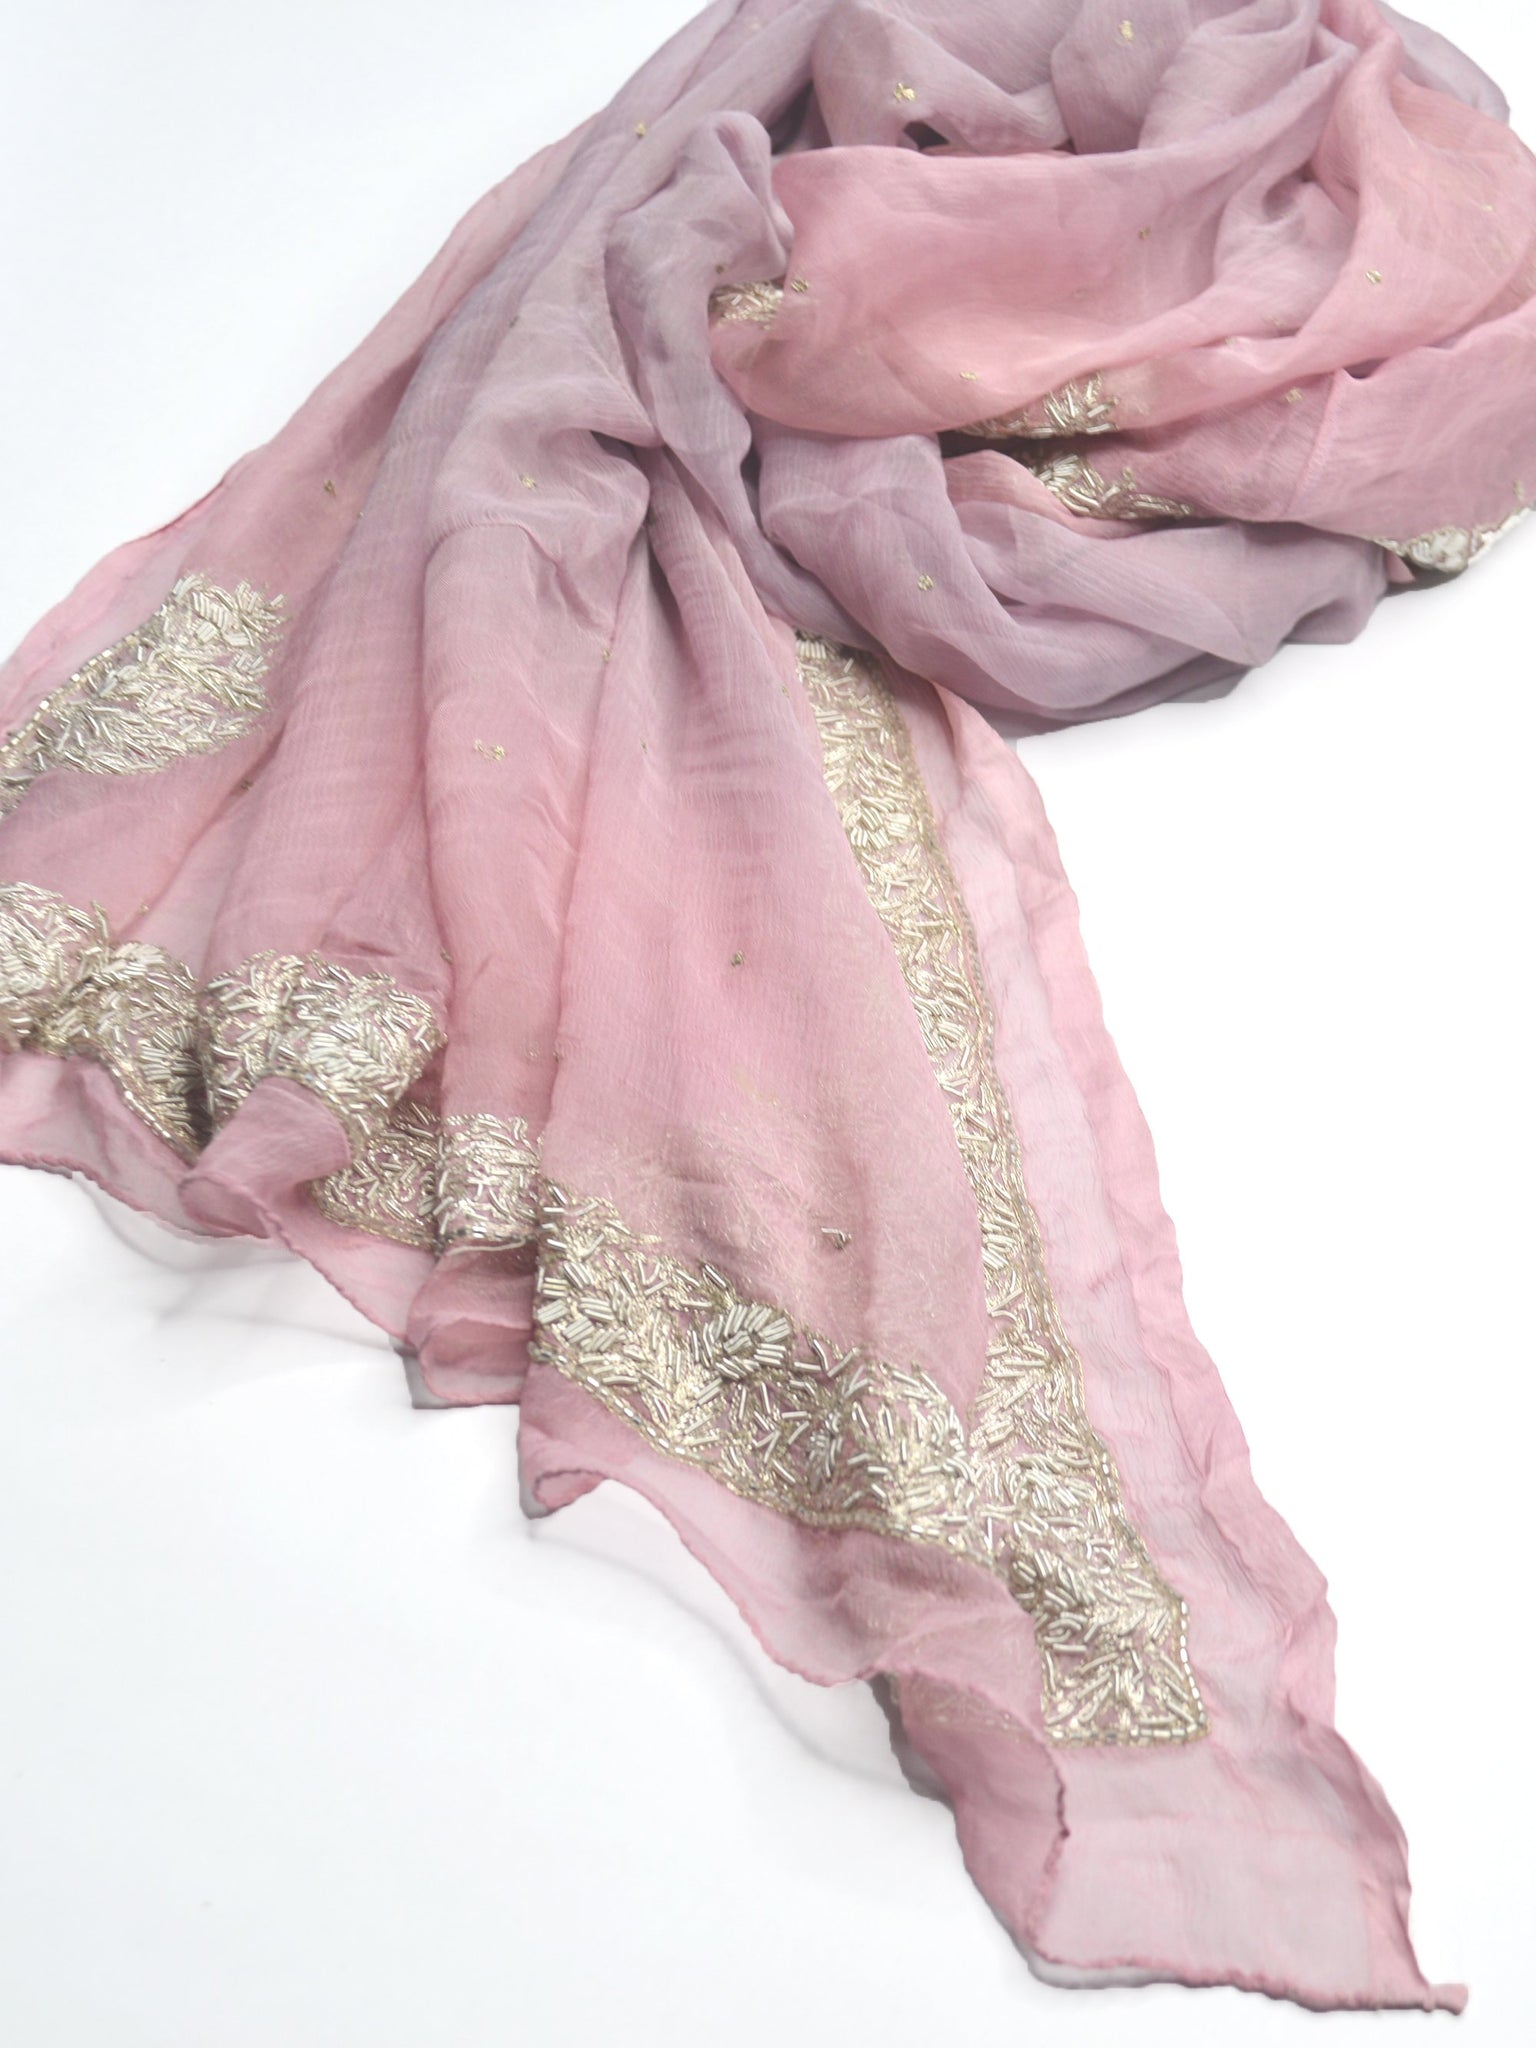 soft, light silk shawl in light pink and purple, with gold embroidery and beading